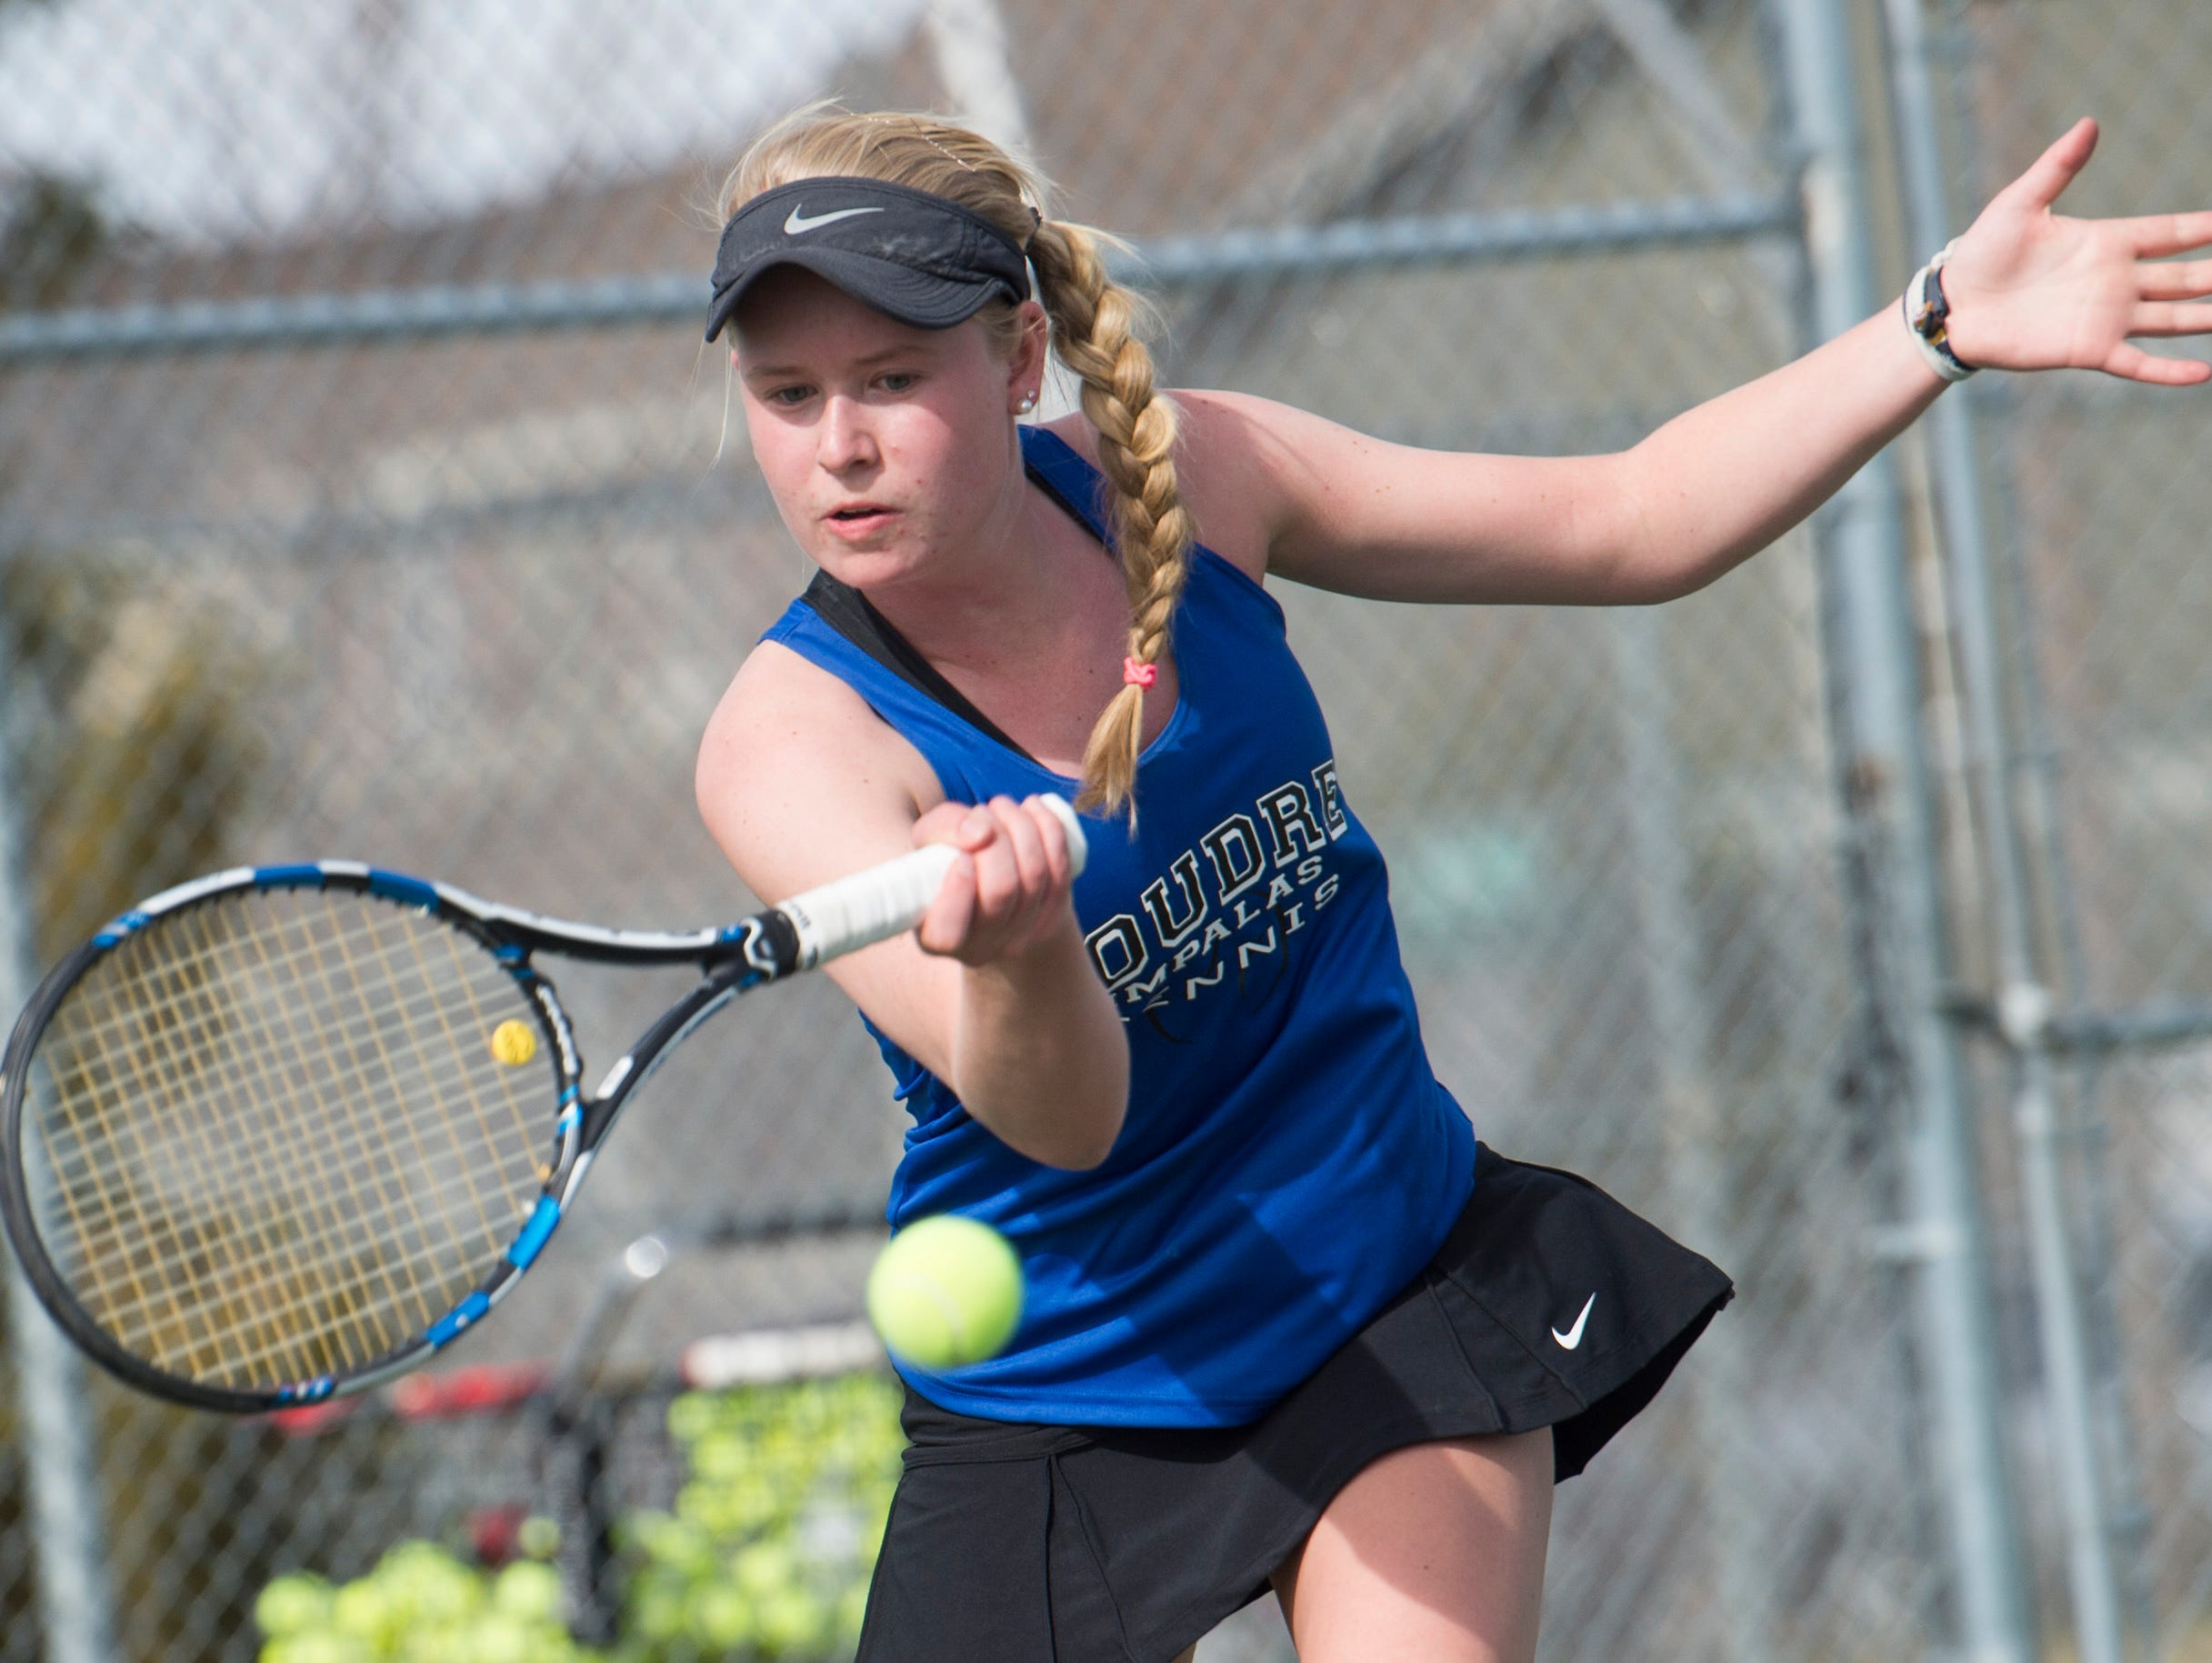 Ky Ecton of Poudre returns the ball to Shawnea Pagat of Fossil Ridge High School during a tennis match Wednesday, April 6, 2016.